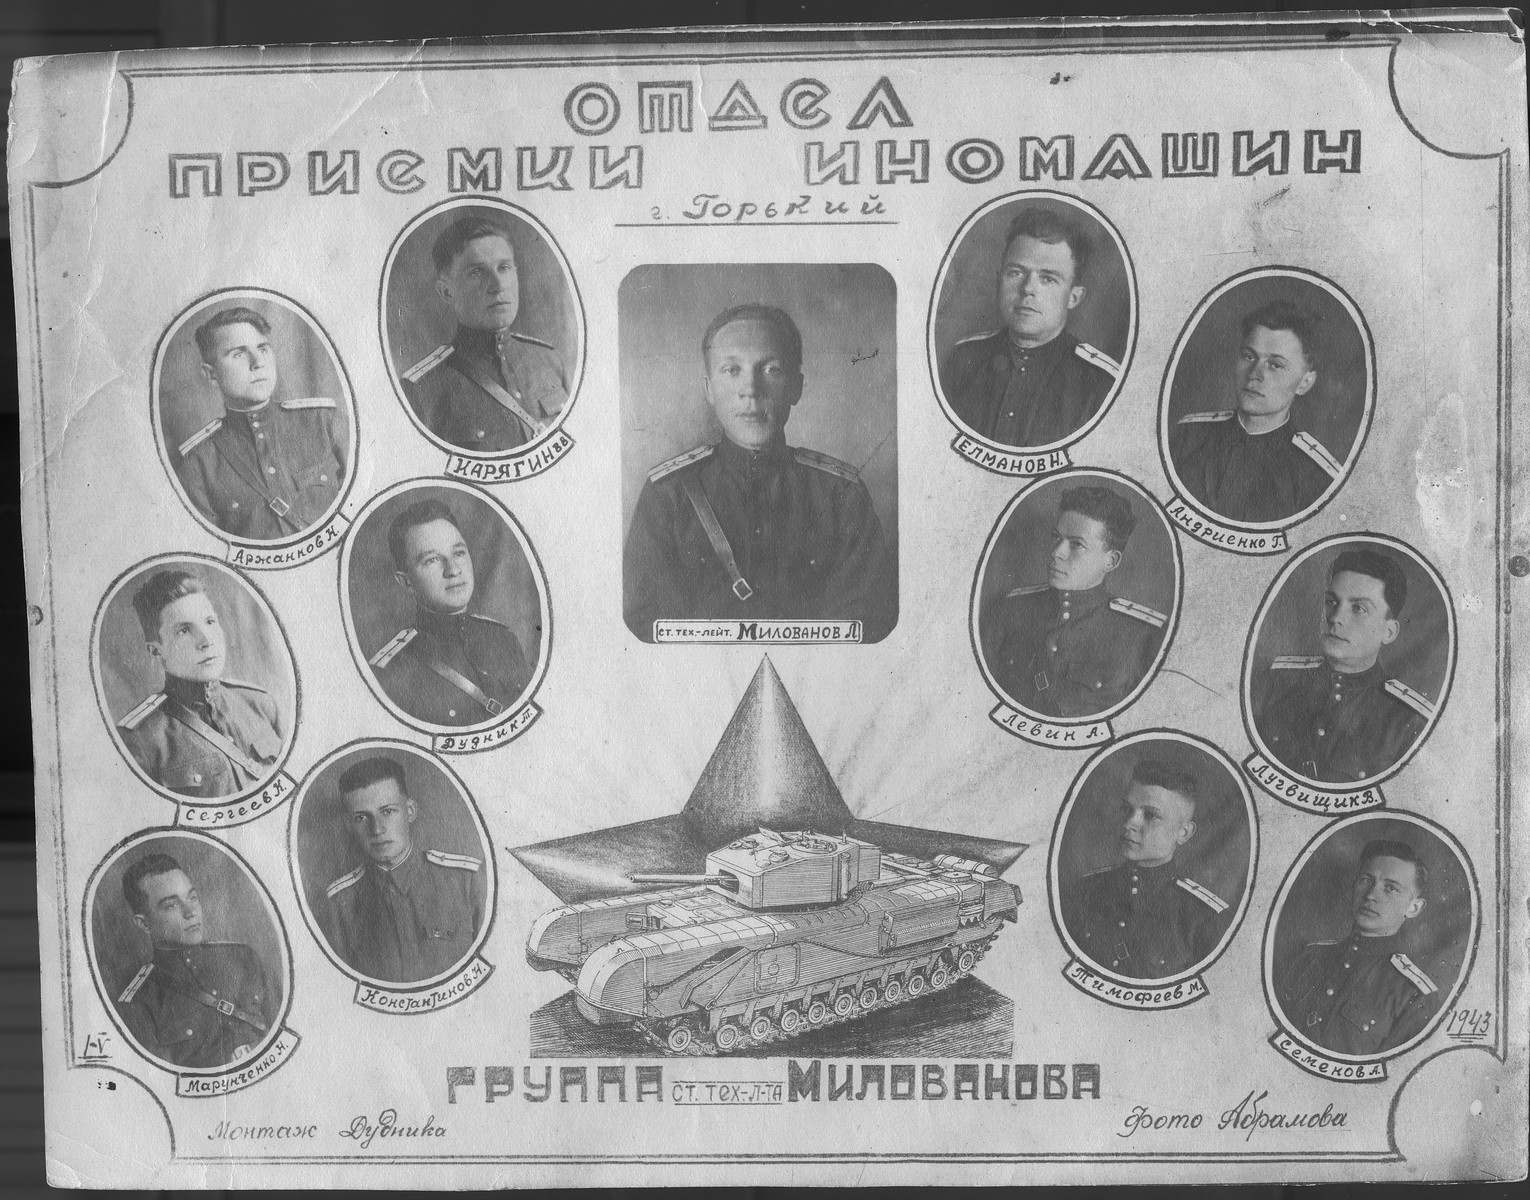 Photo montage of members of a unit of the Soviet Army responsible for the acquisition of foreign military hardware, under the command of Senior Lieutenant Milovanov.   This unit, which included a few Soviet Jews, was responsible for receiving Pershing tanks and other military supplies sent to the Soviet Union by the United States under the Lend Lease program.  Abram Levin (later Lewin), the donor's husband, is pictured in the second row, second from right.